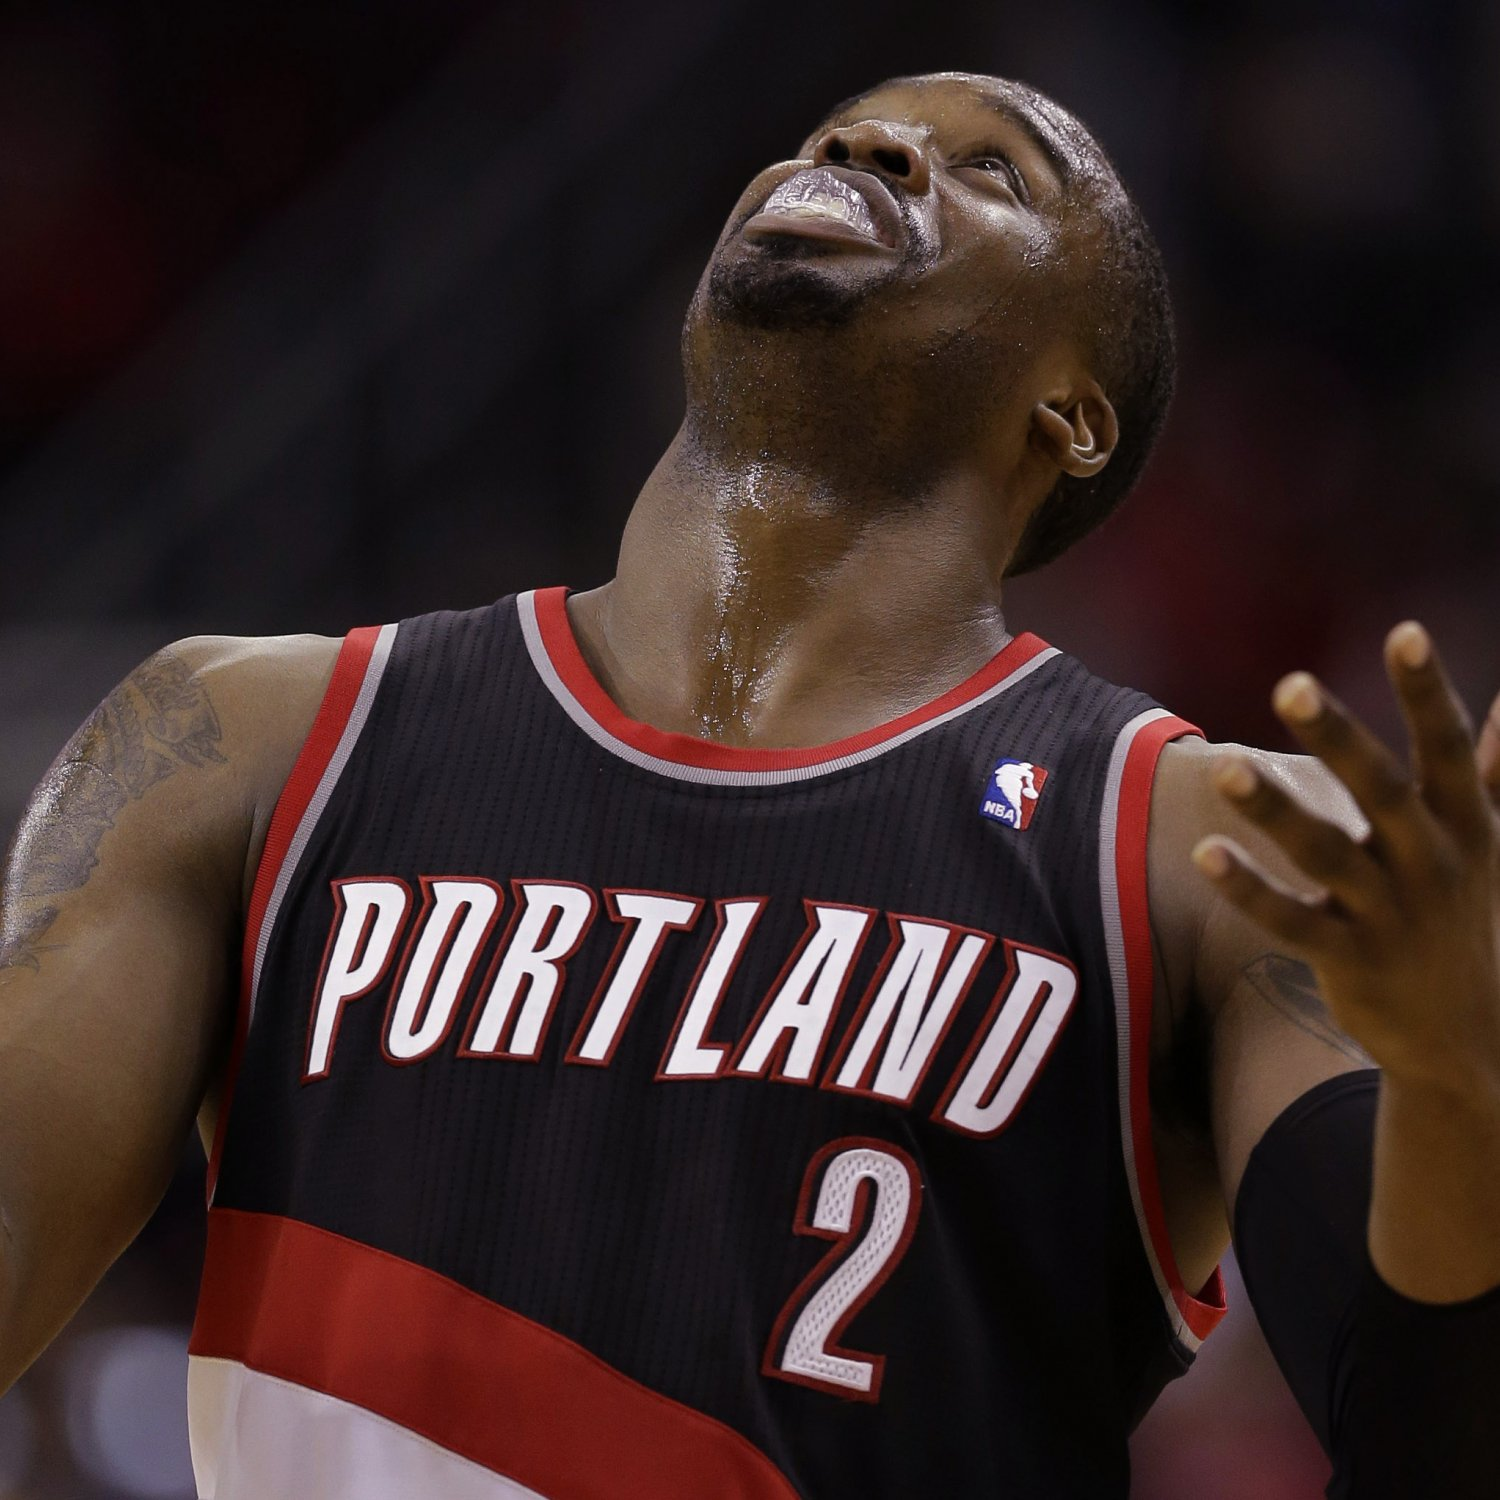 Portland Trail Blazers Live Stream: Will Portland Trail Blazers' Dream Season Wind Up As A